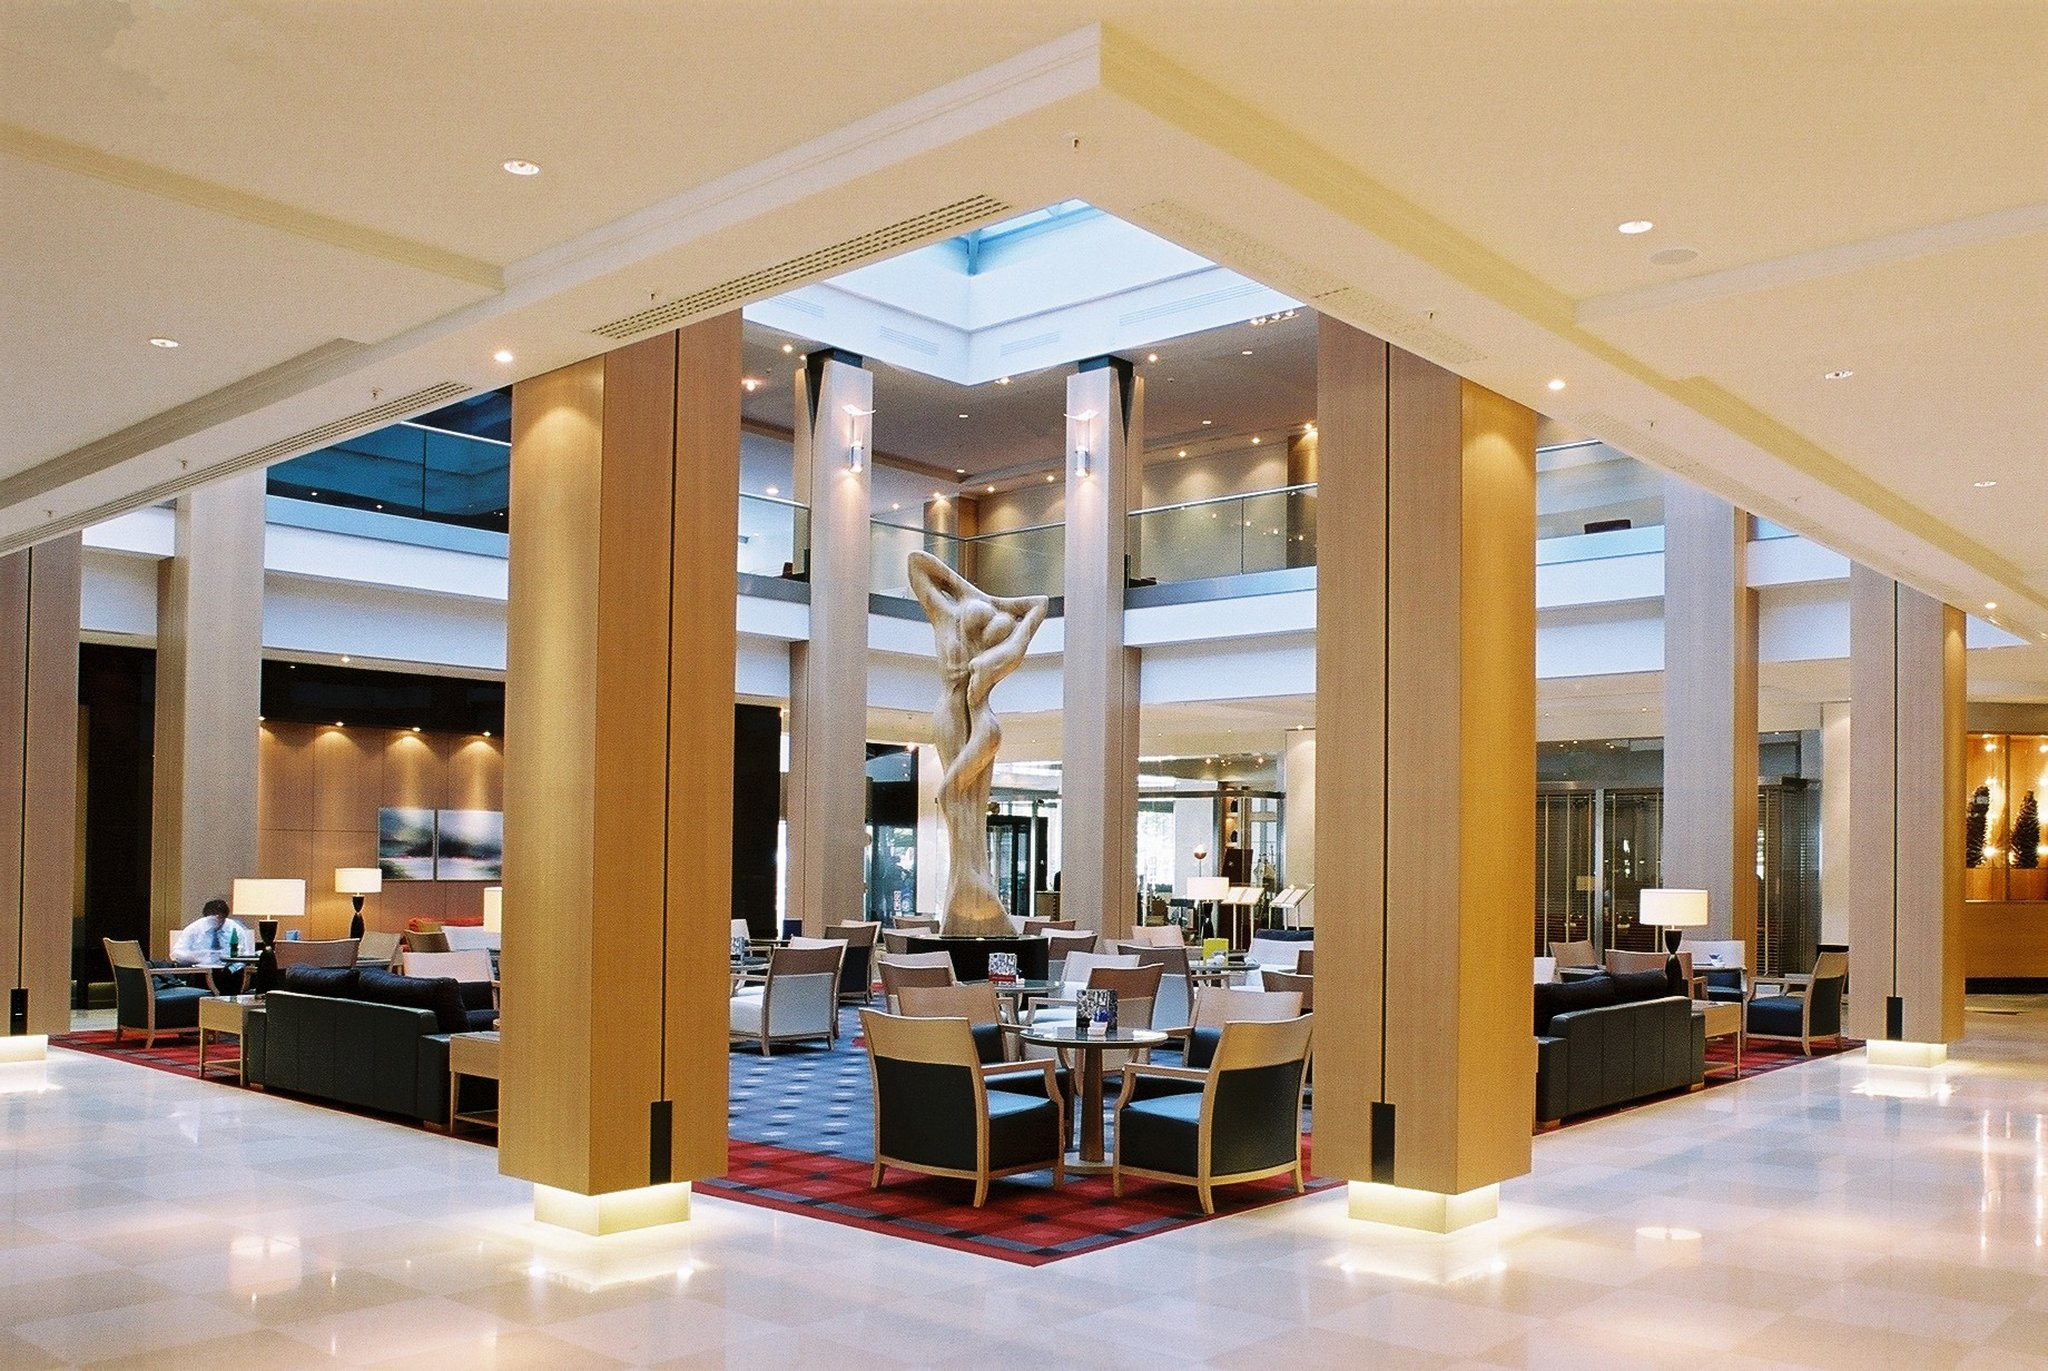 Meeting and event spaces at hilton austria hotels vienna and -  25